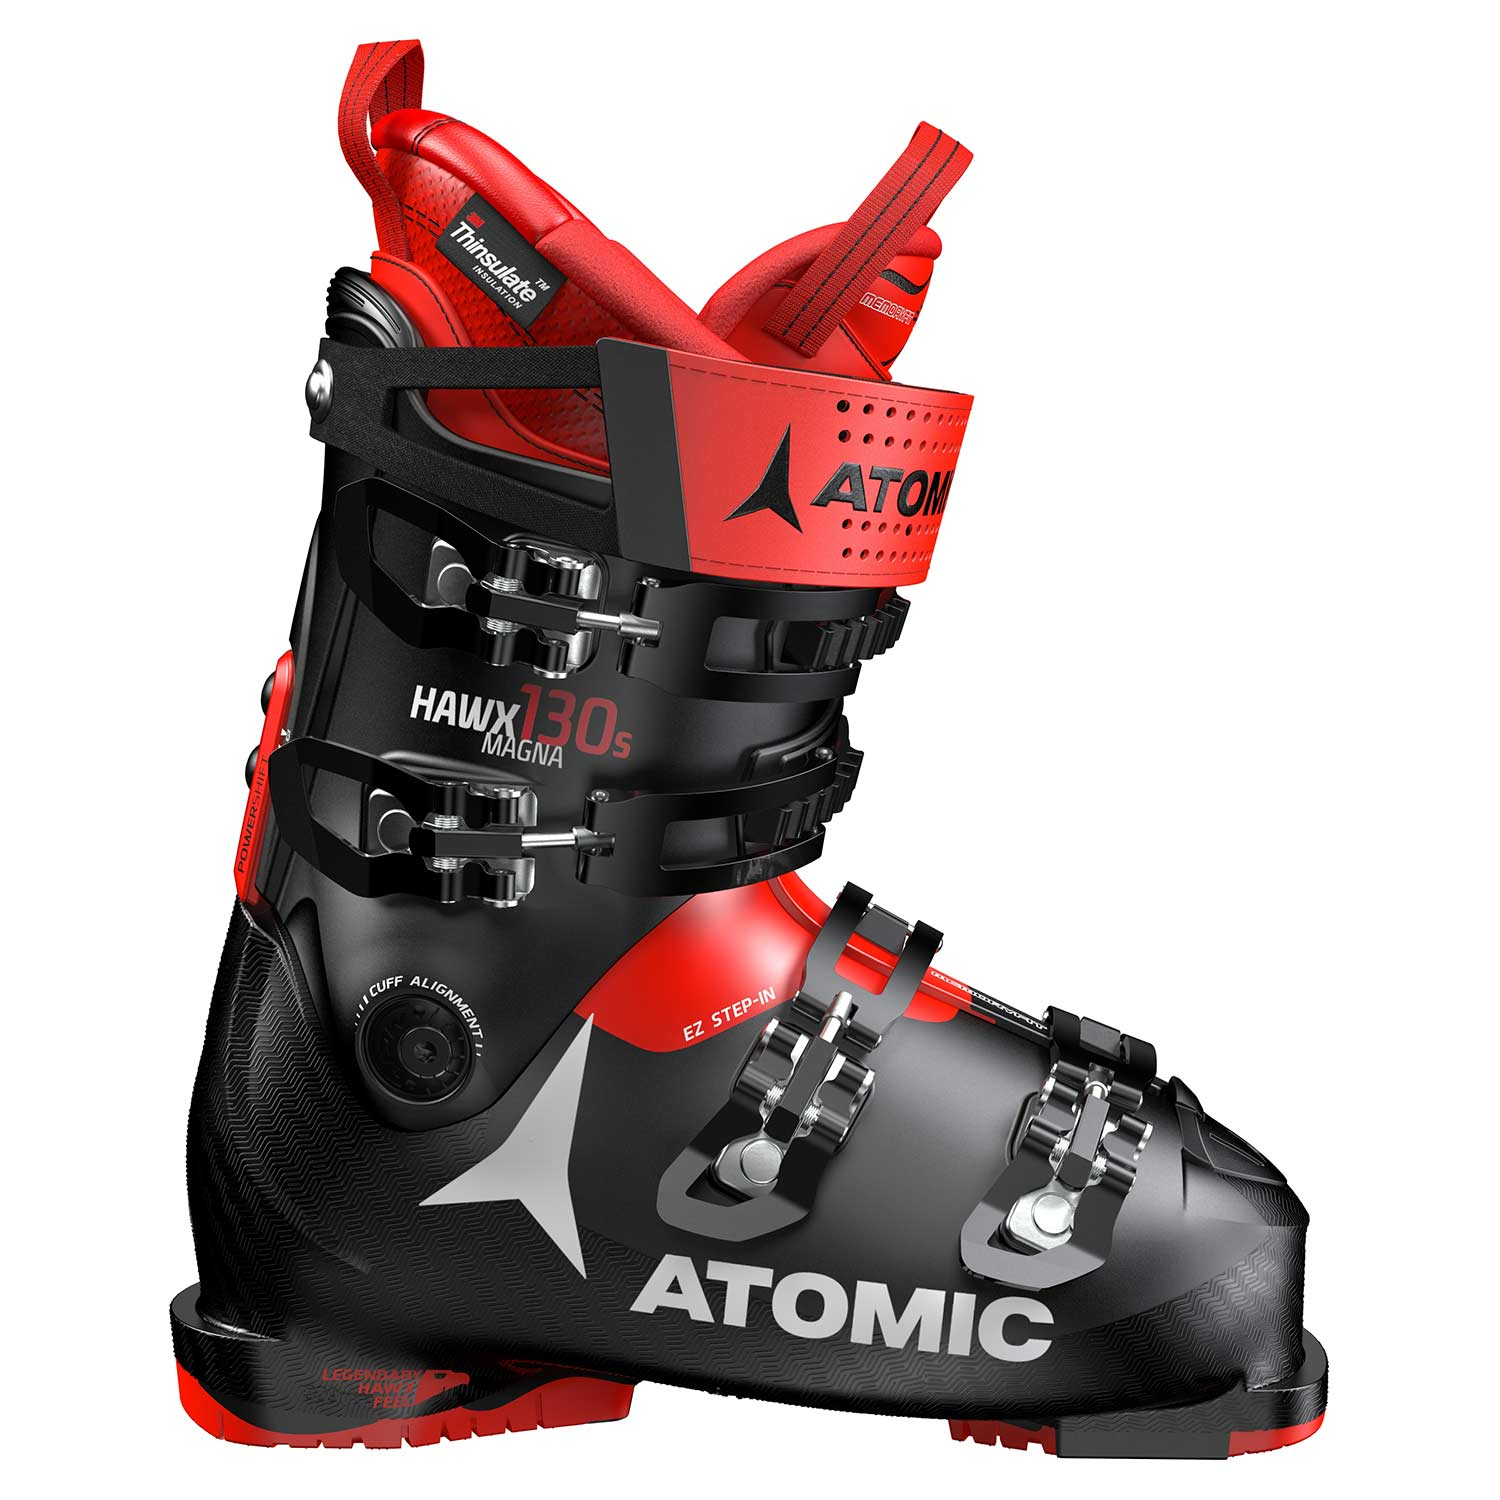 Atomic Hawx Magna 130 S Ski Boot Black/Red 2020